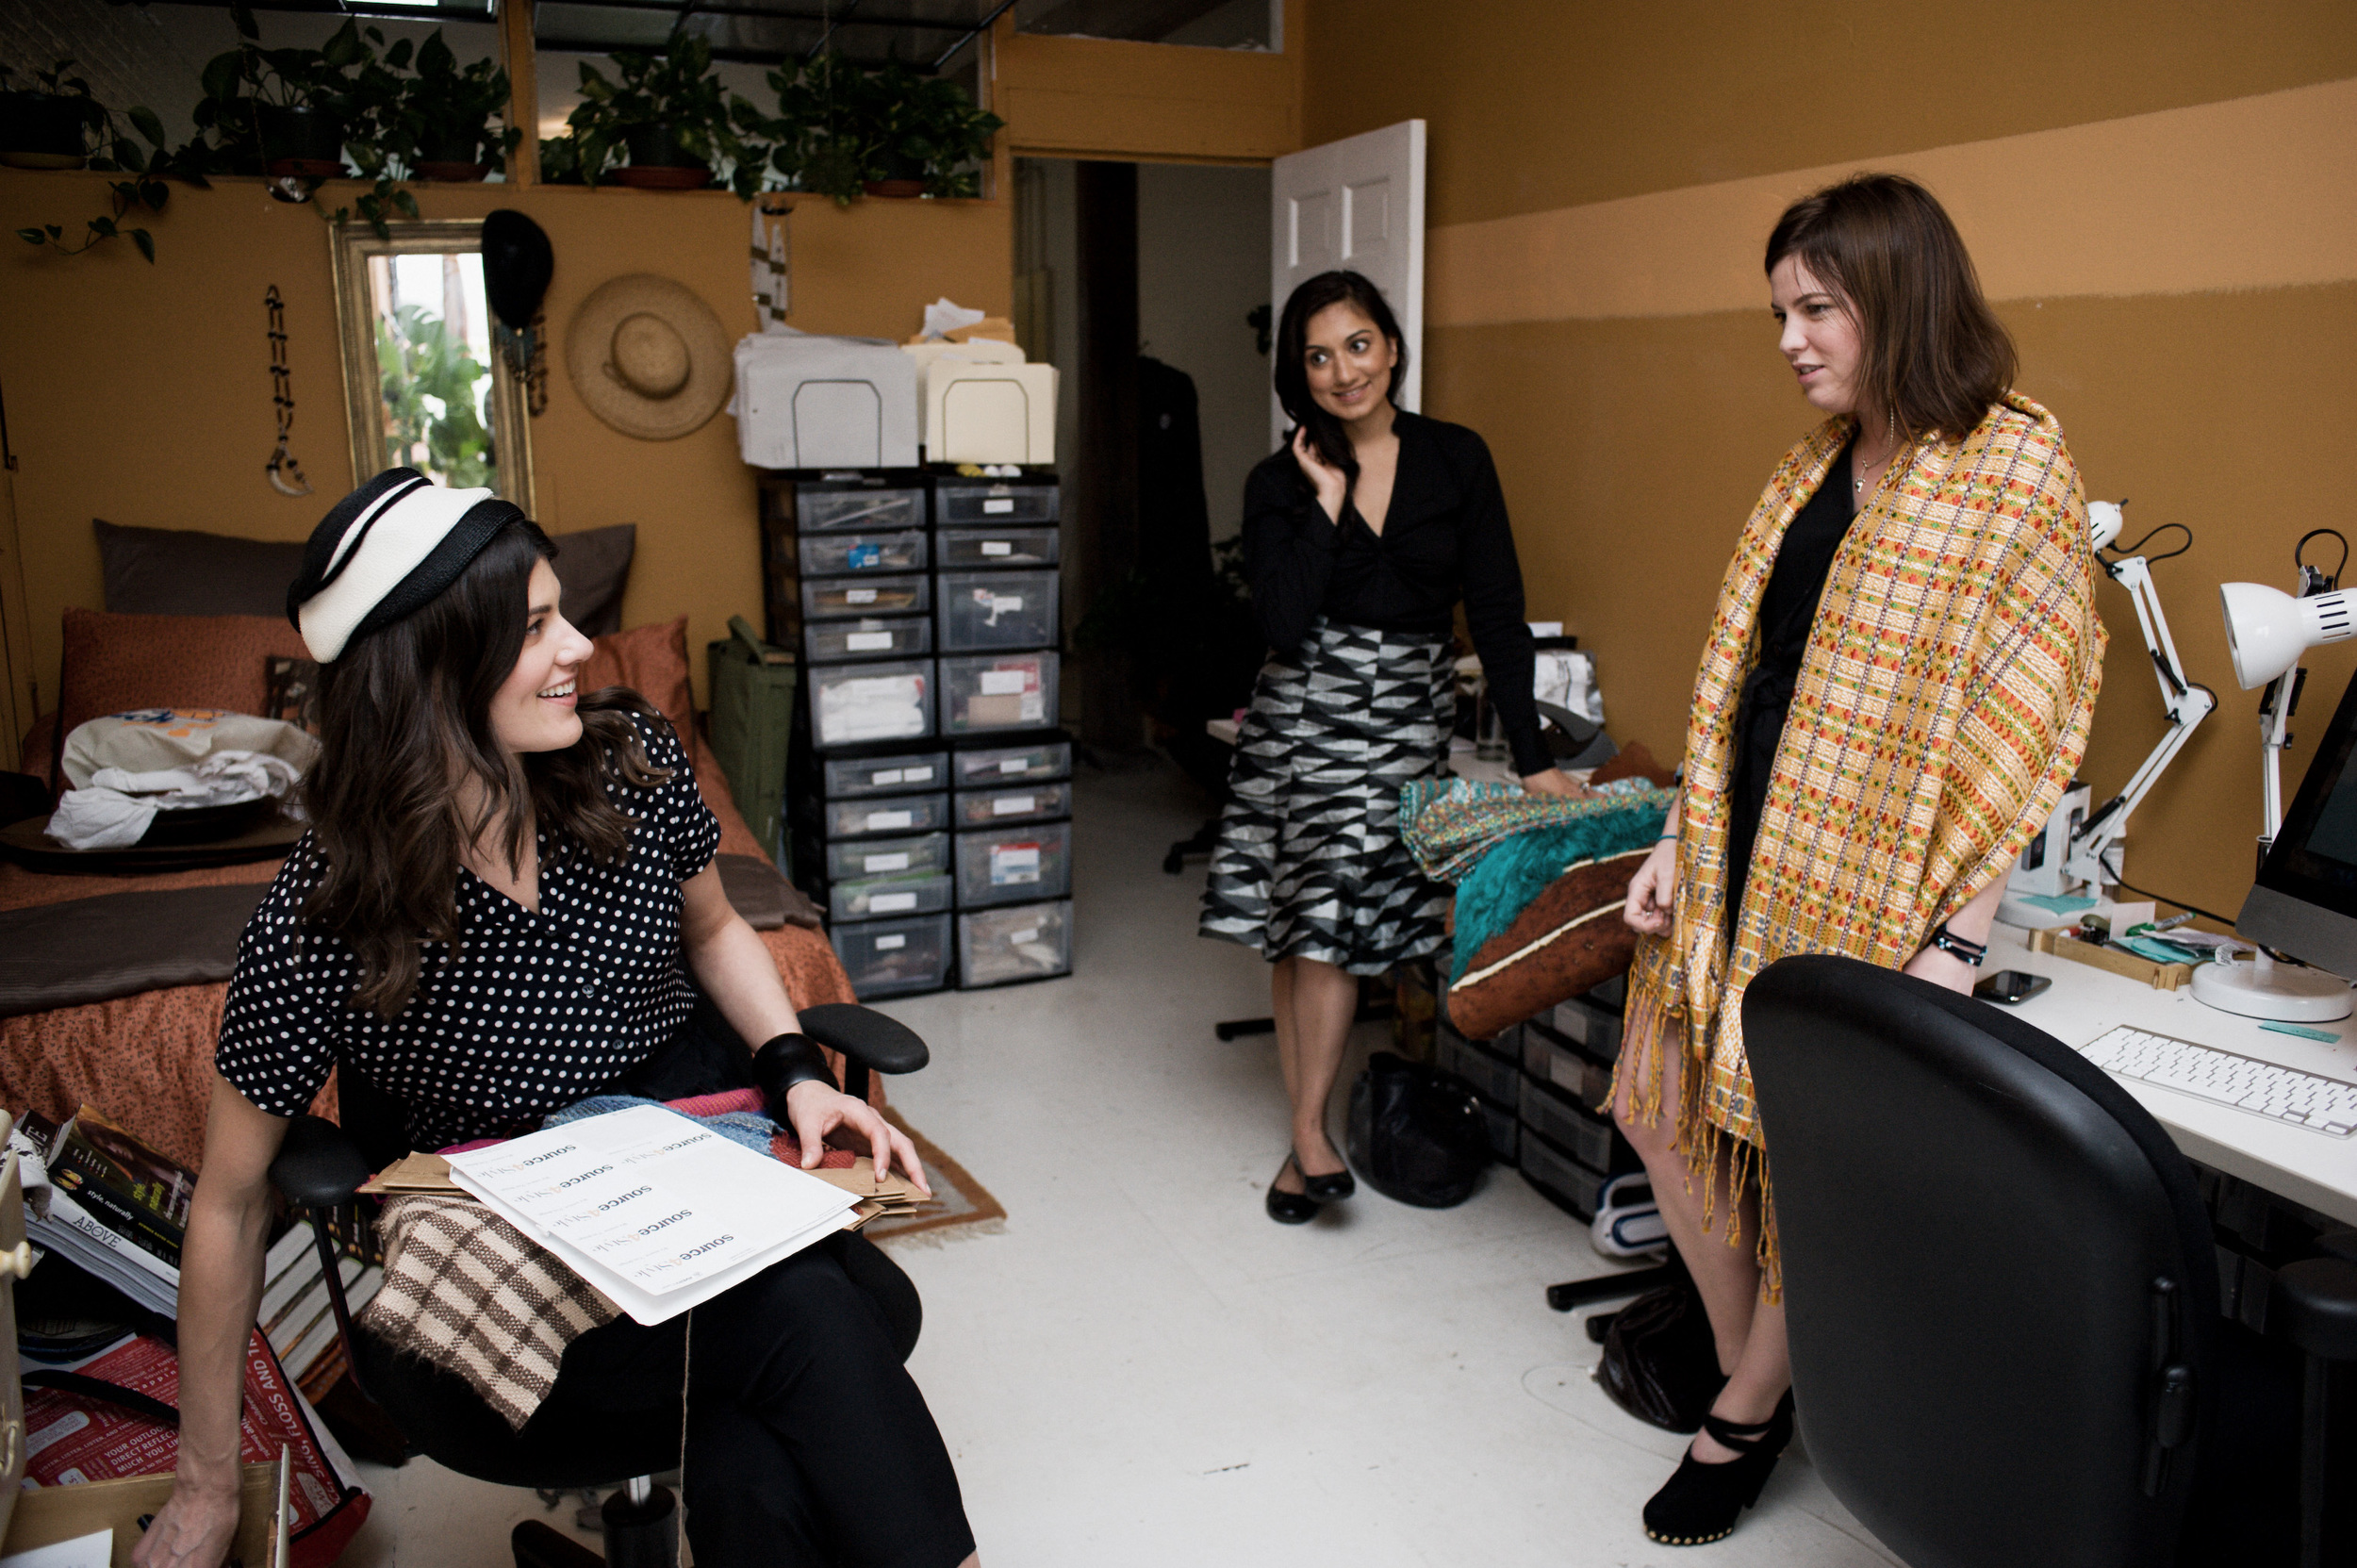 Benita, Elizabeth and I were the core team at Source4Style. Nothing would have been made possible without the help of these two ladies! Photography by: Shawn Brackbill for Source4Style.